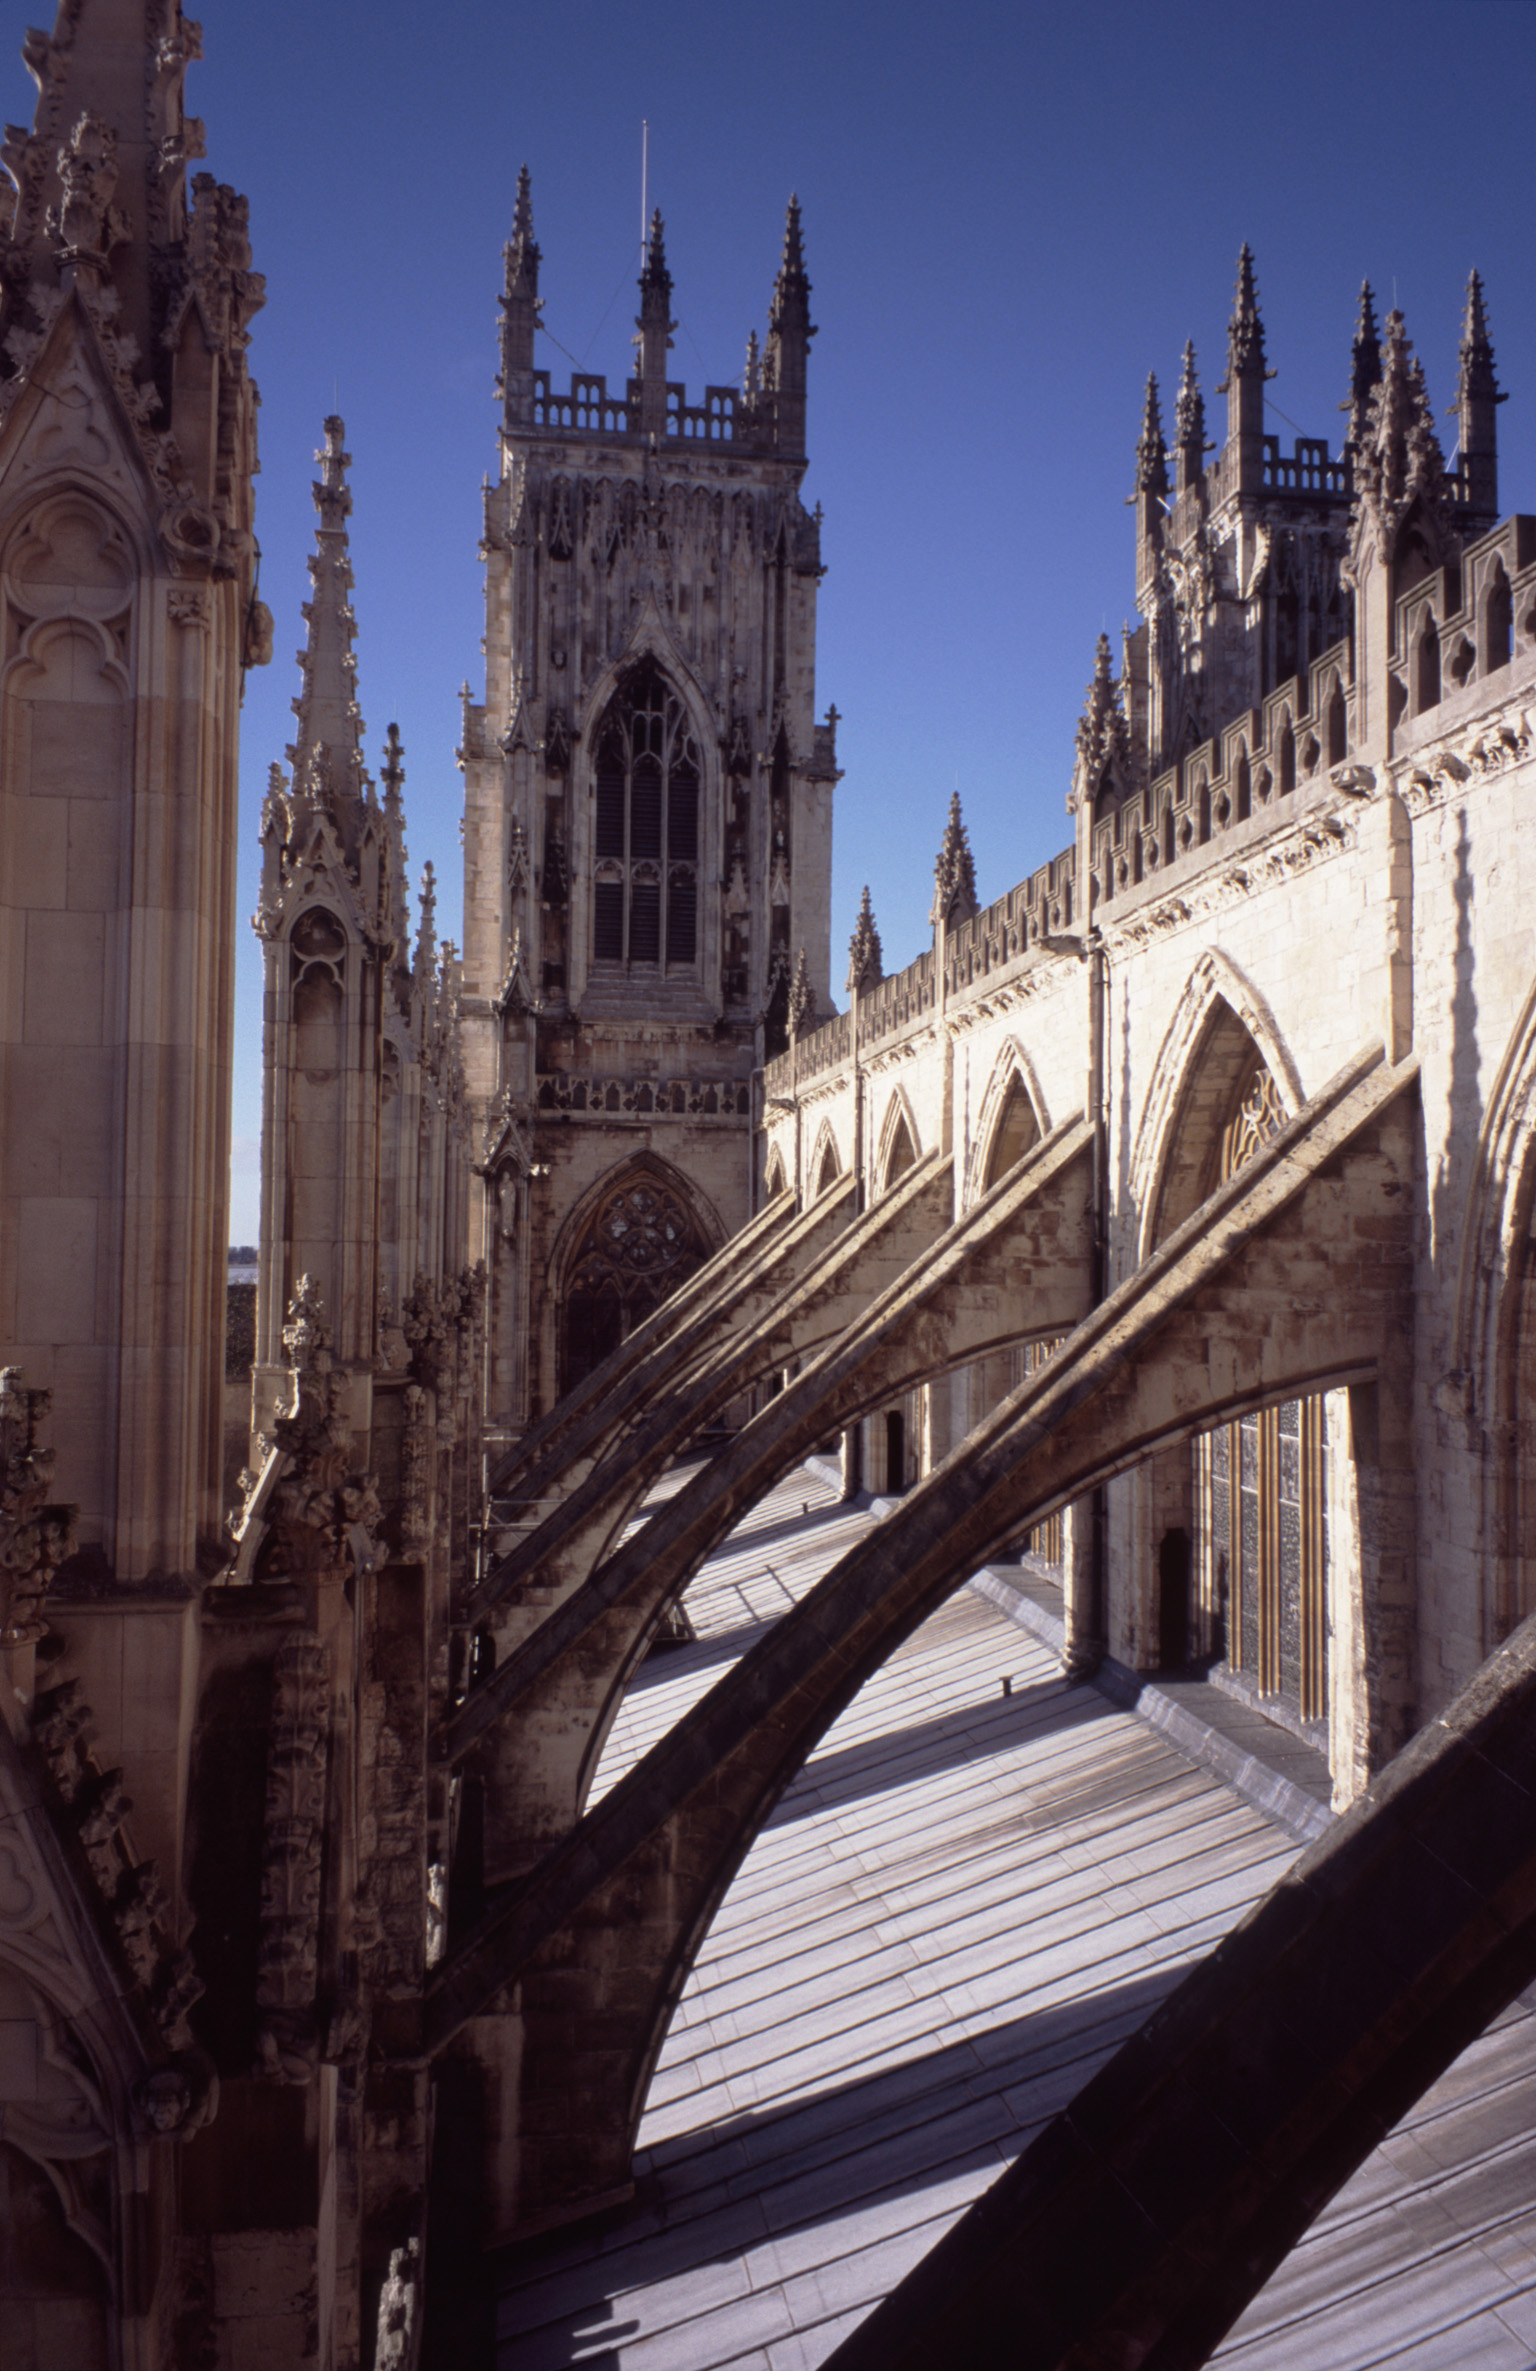 Flying Buttresses at Famous Historic York Minister Cathedral with Architectural Design, Located in York, England.